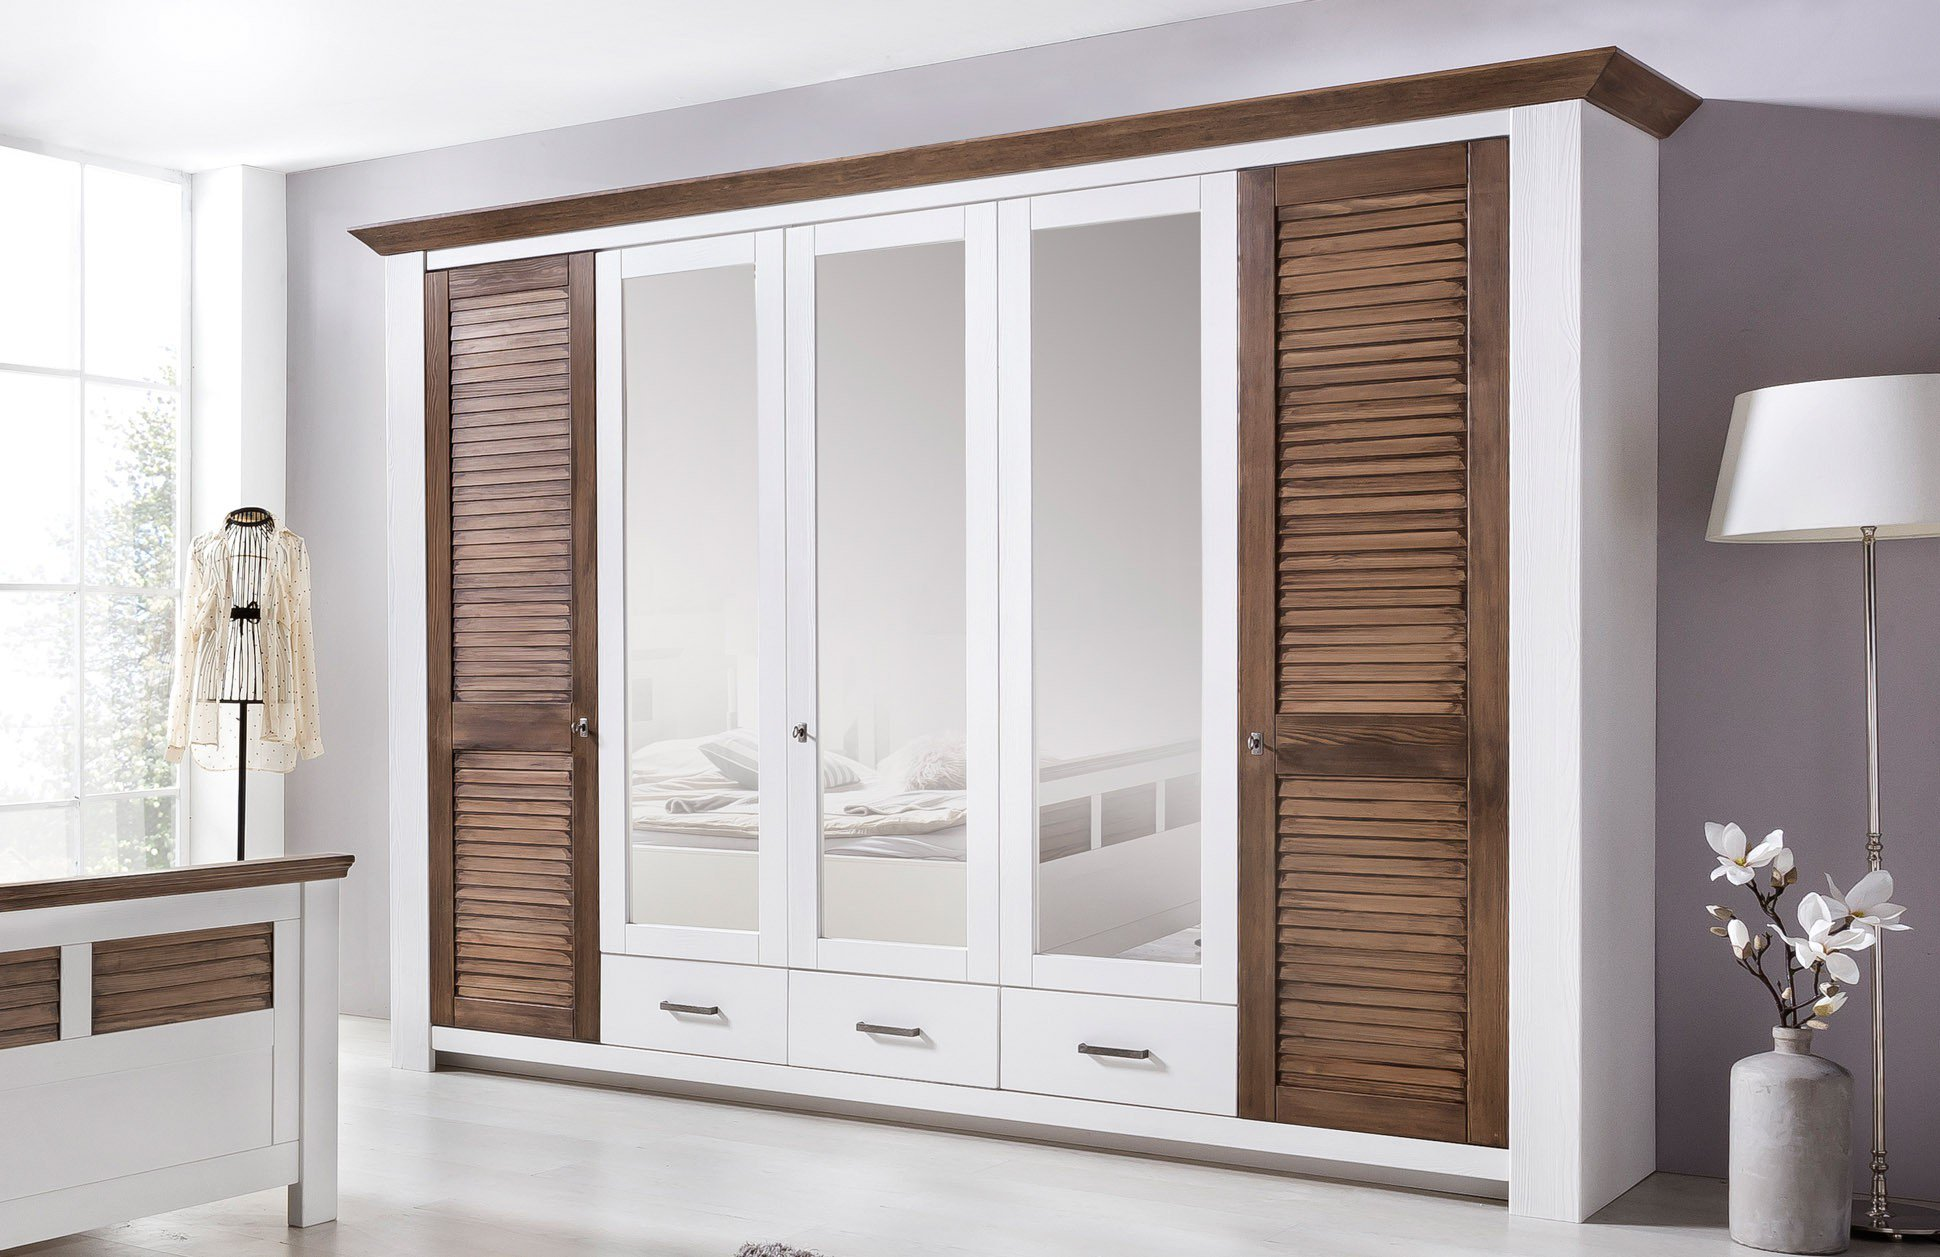 telmex laguna kleiderschrank mediterran m bel letz ihr online shop. Black Bedroom Furniture Sets. Home Design Ideas